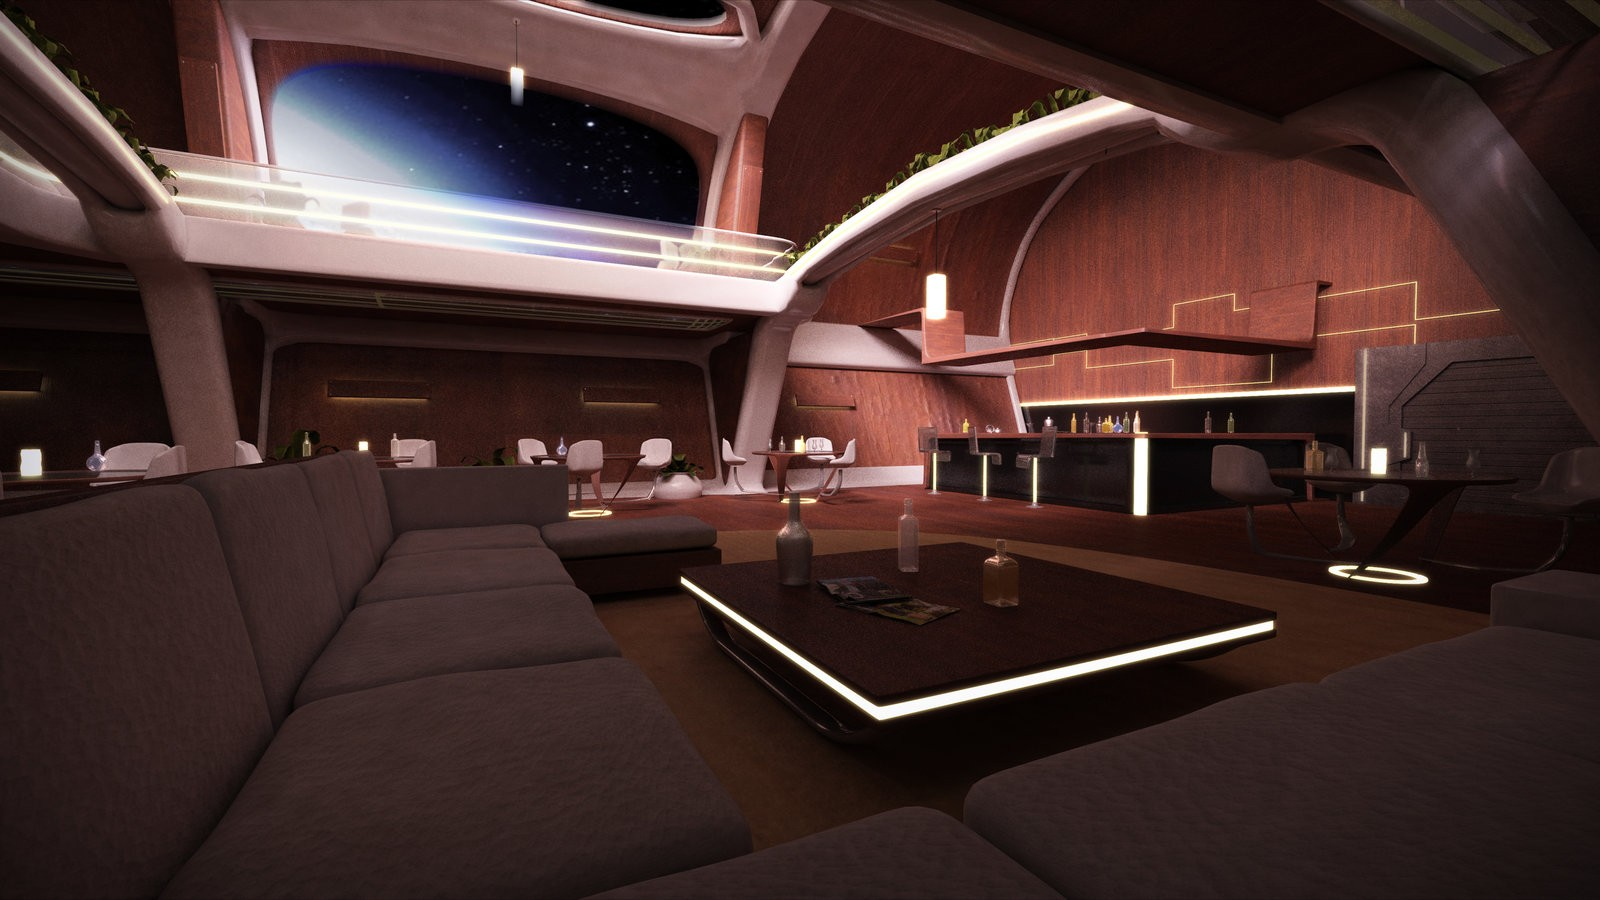 Spaceship Interior Design